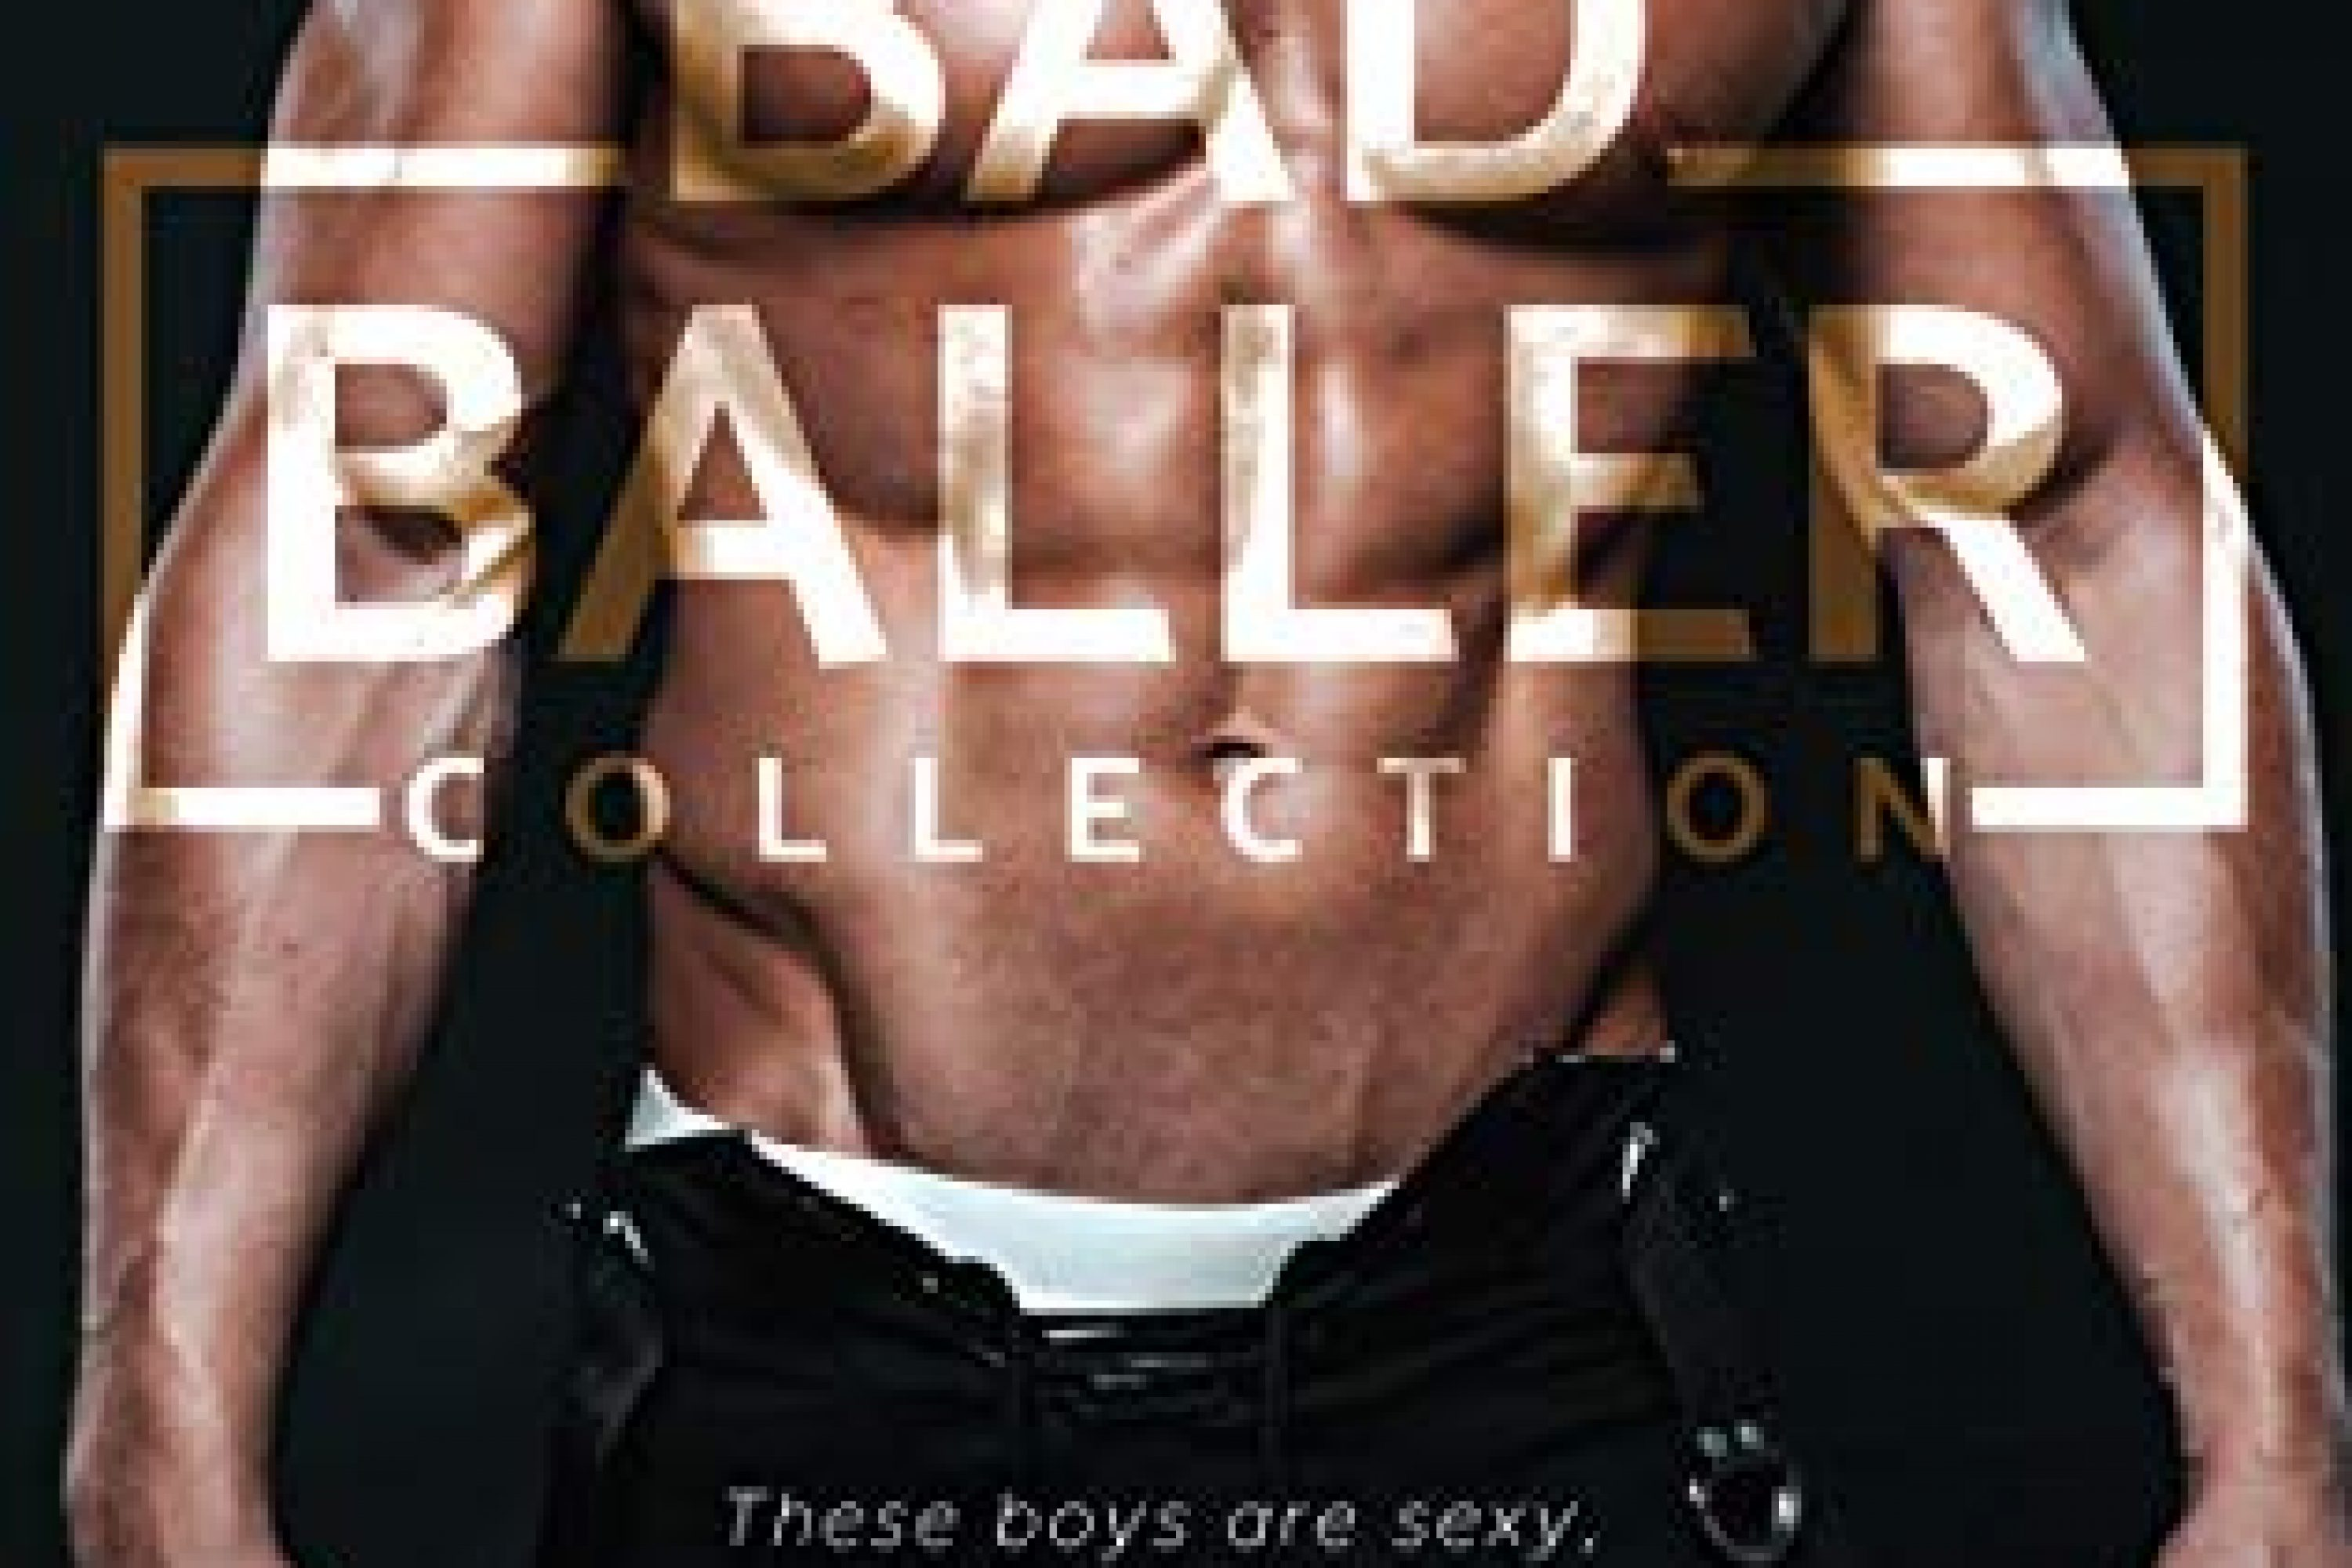 Review: The Bad Baller Collection by Tabatha Kiss